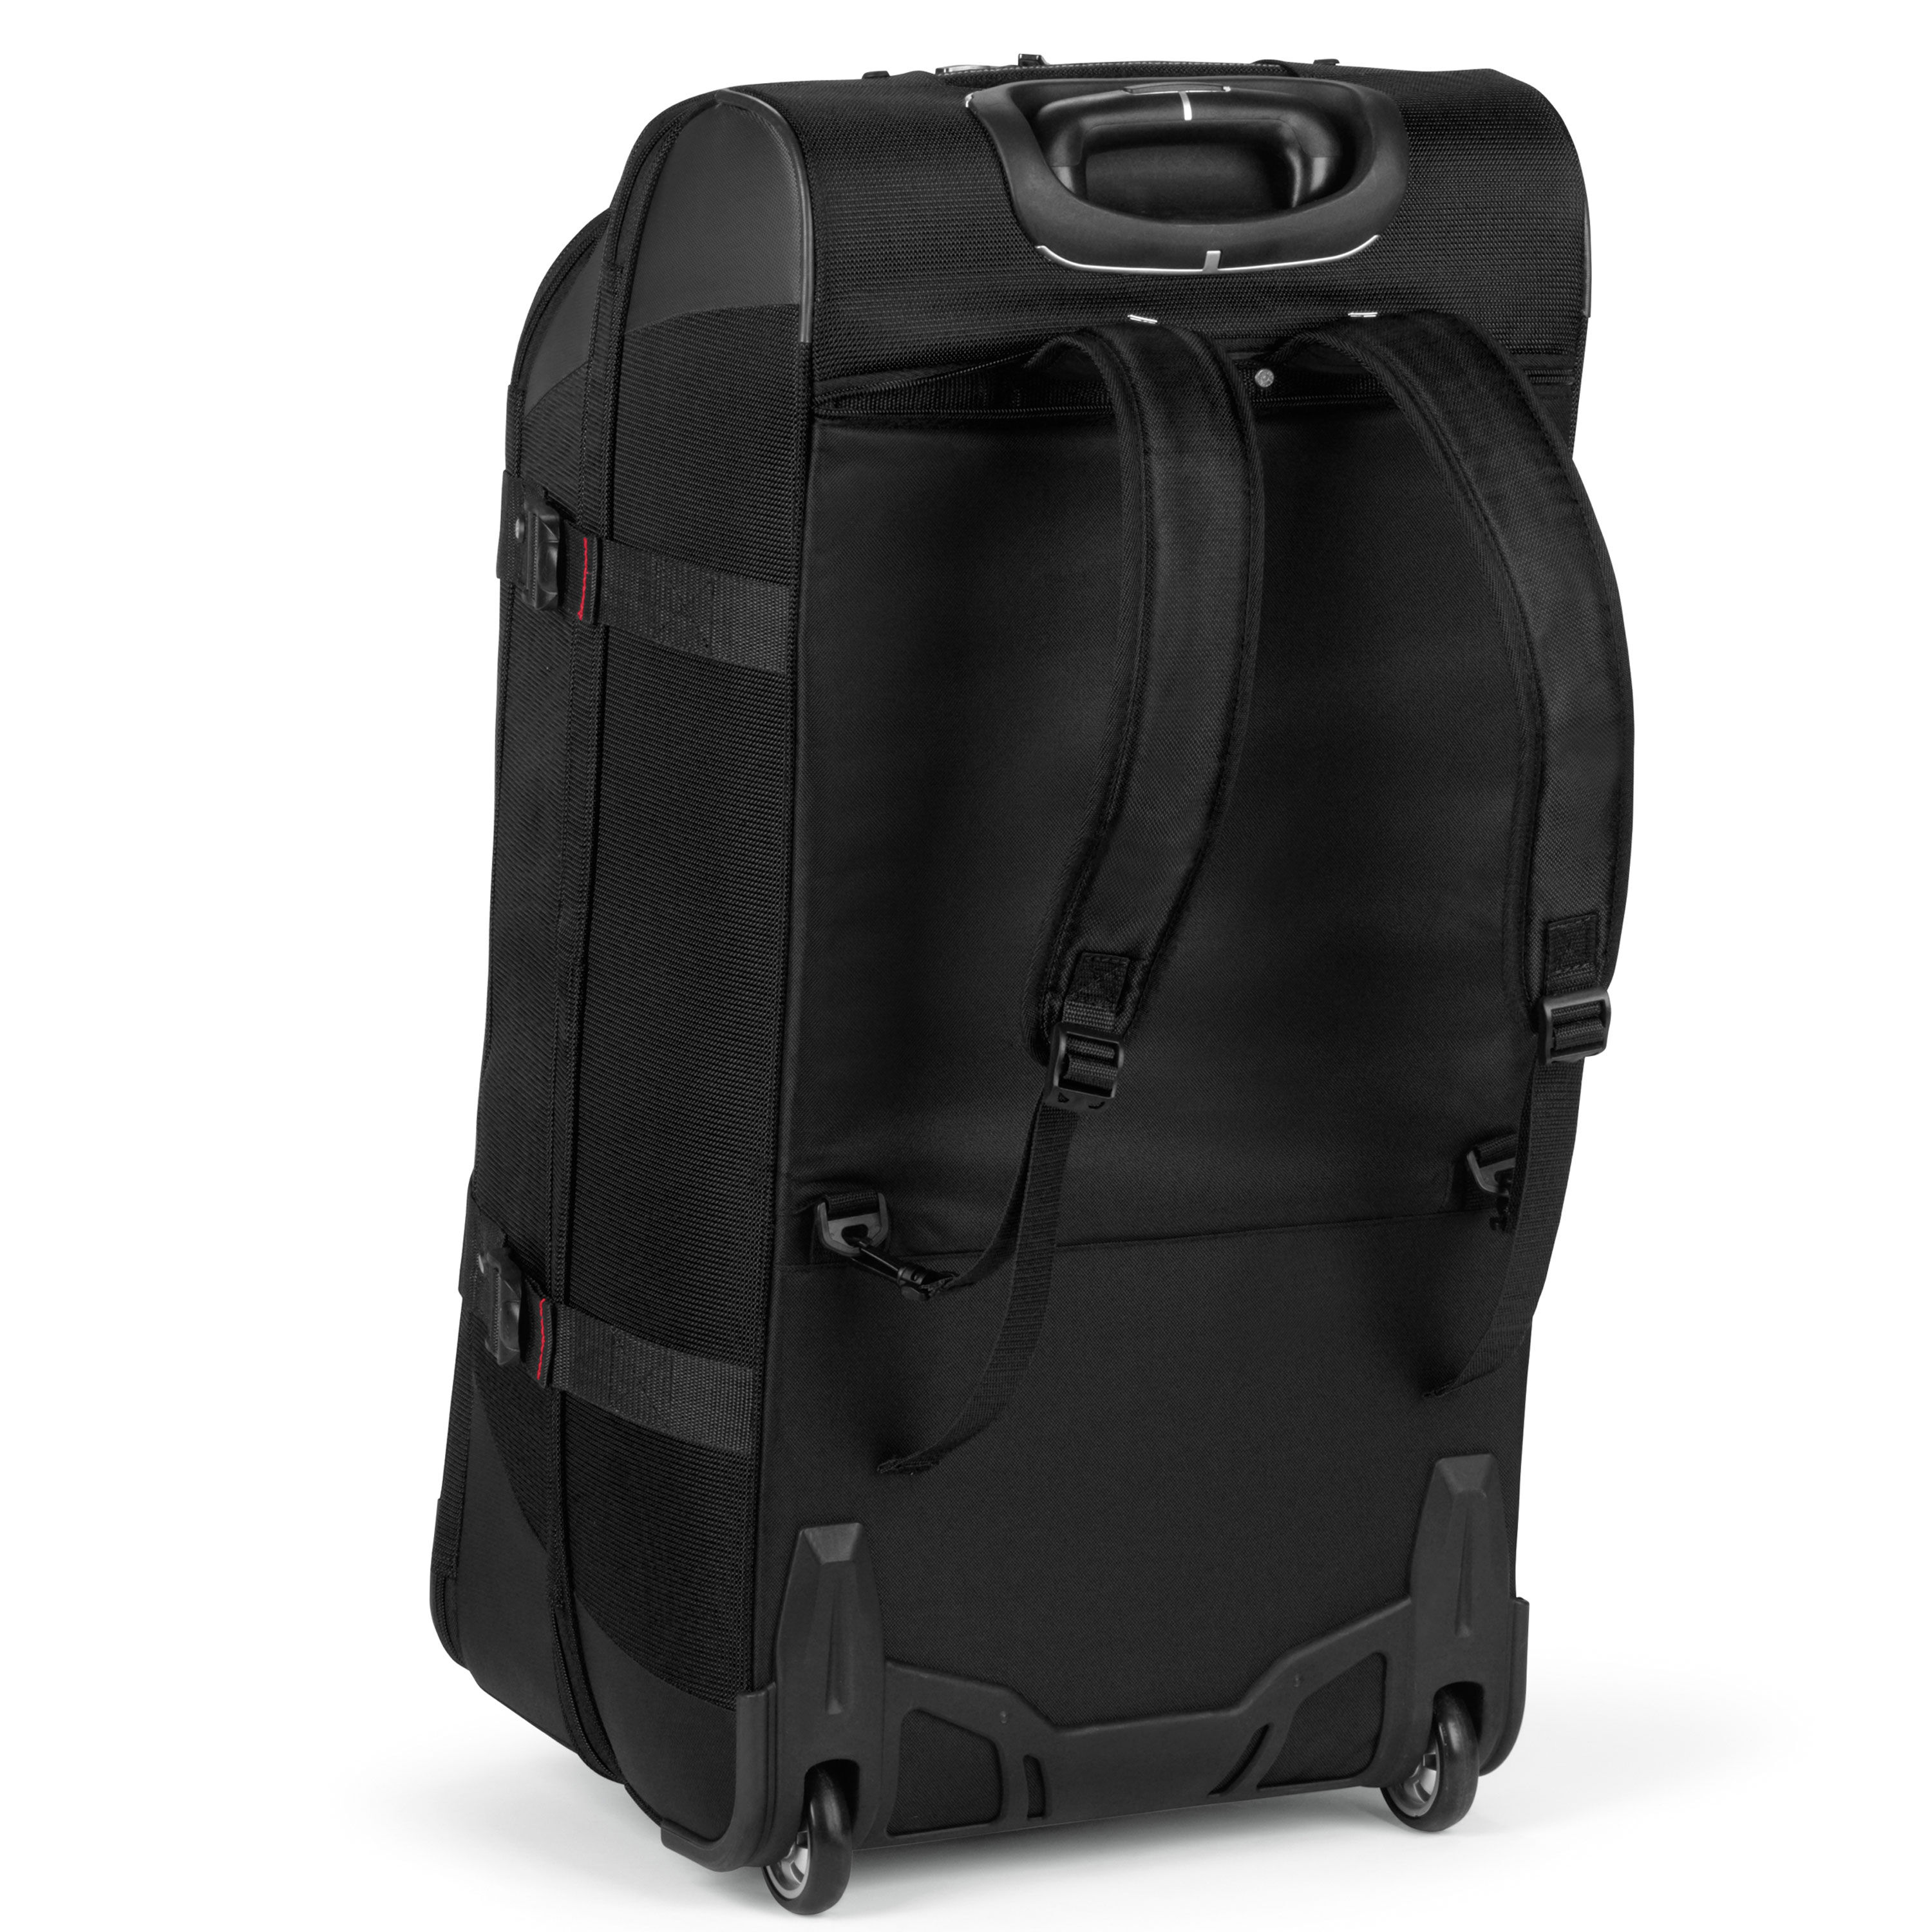 Shipping At The Backpack Travel 70 L 25 5 X 13 4 10 2 Weighs 6 Lbs Opens Fully Like A Suitcase For Easy Access Removable Daypack